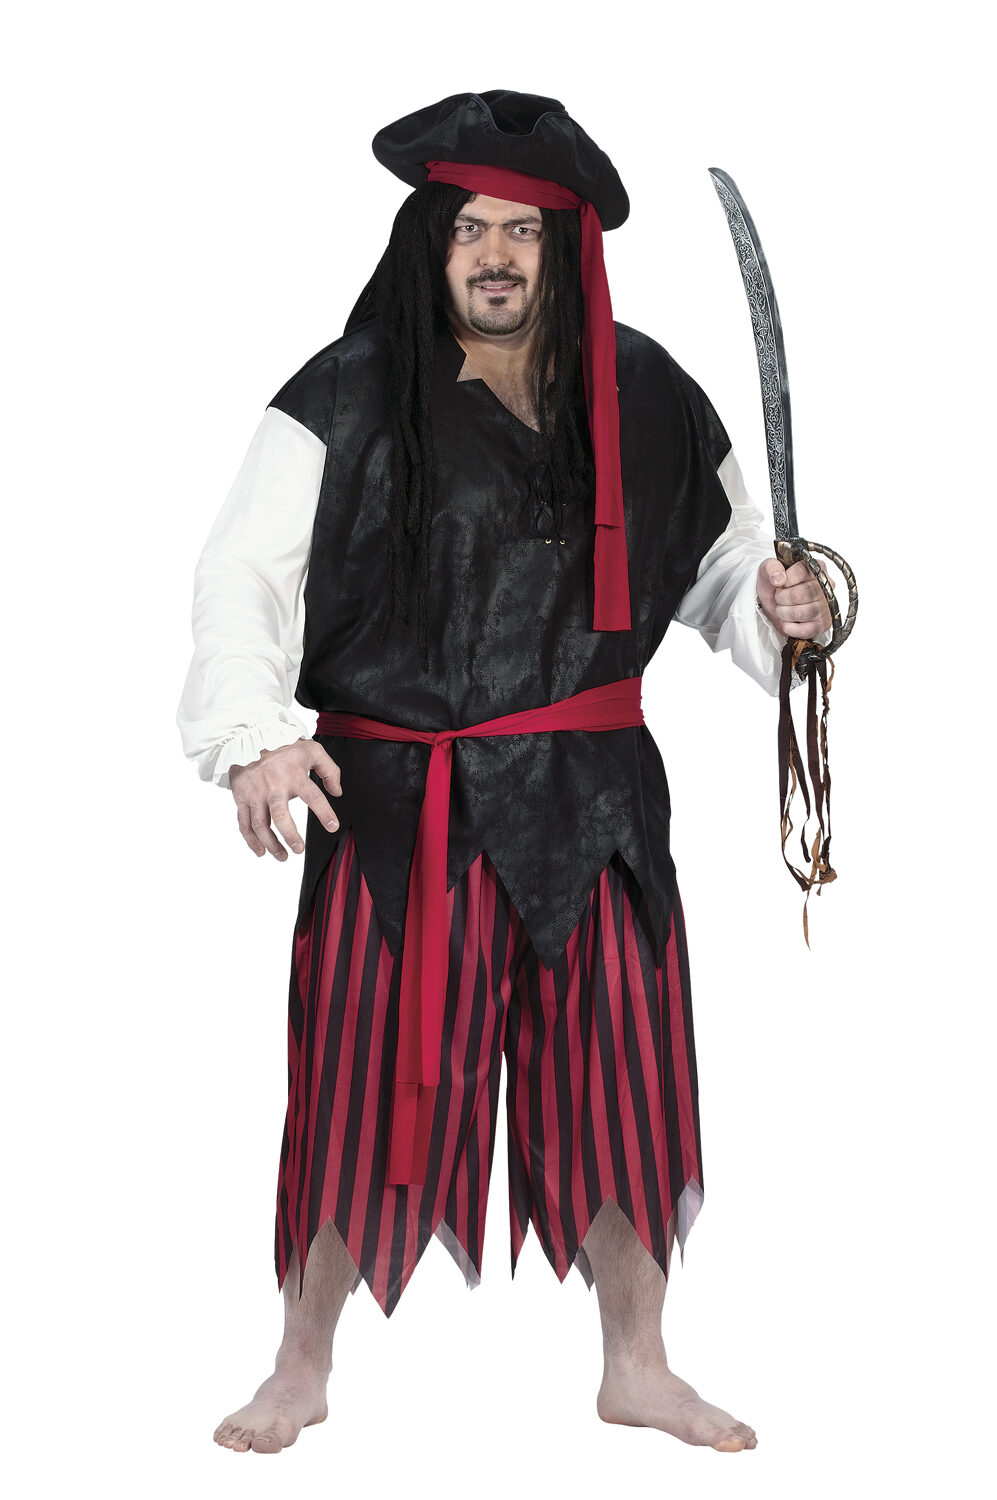 Mens Plundering Caribbean Pirate Plus Size Costume  sc 1 st  Mr. Costumes & Mens Plundering Caribbean Pirate Plus Size Costume - Mr. Costumes